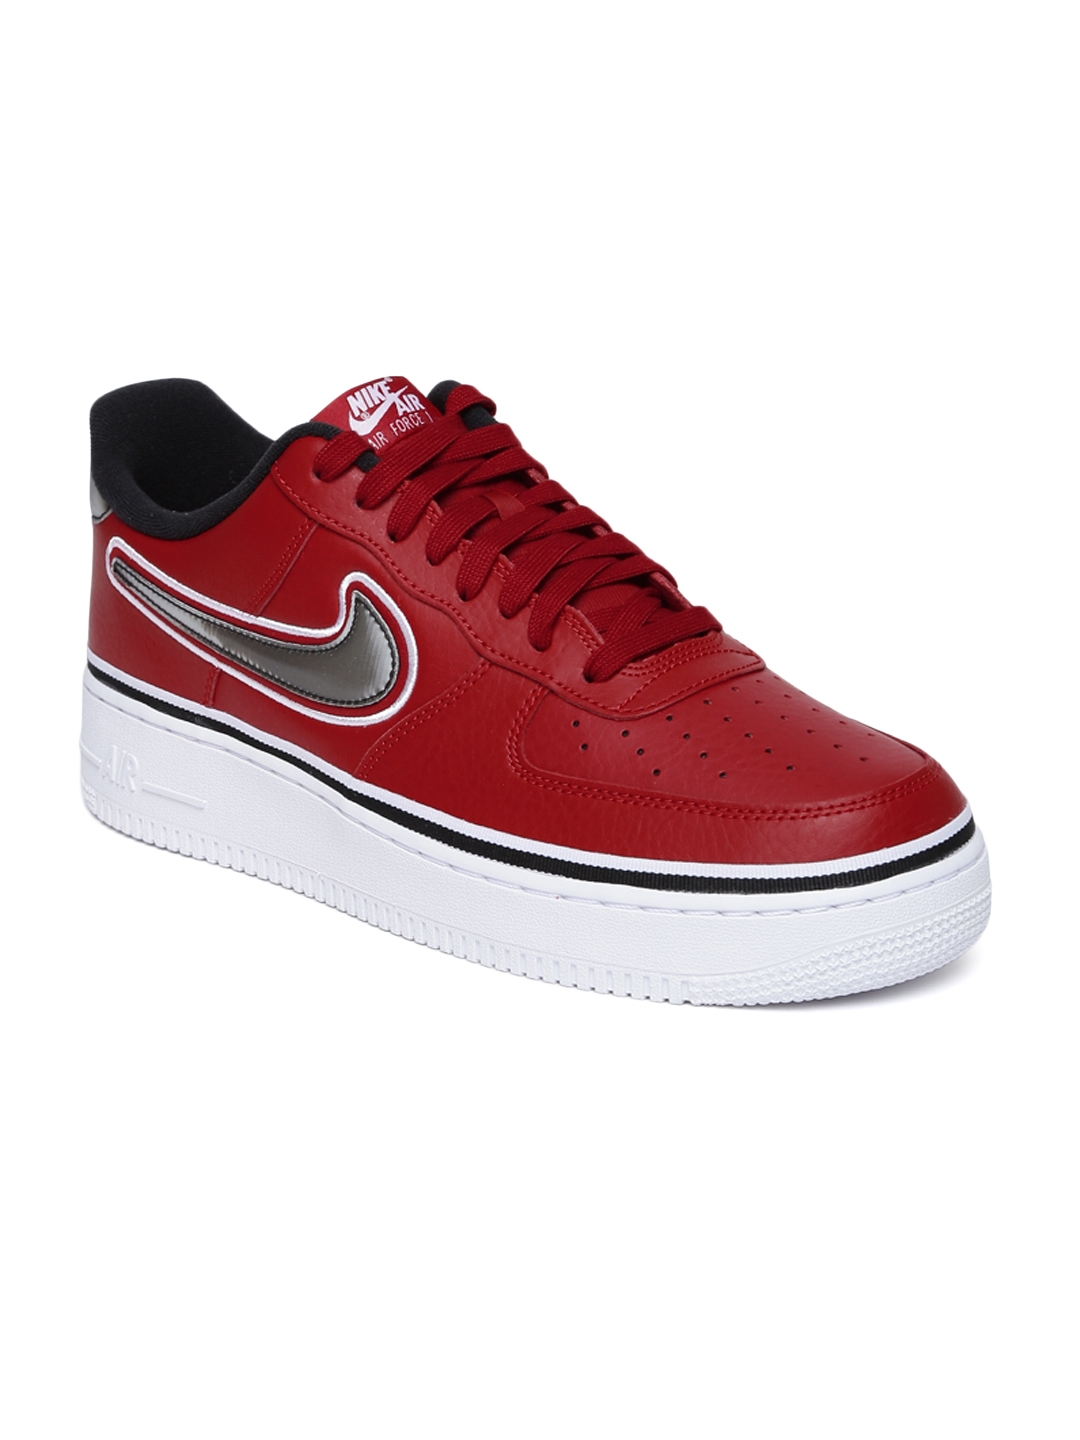 0880e648e33f Nike Men Red Air Force 1  07 LV8 Sport Perforated Leather Sneakers